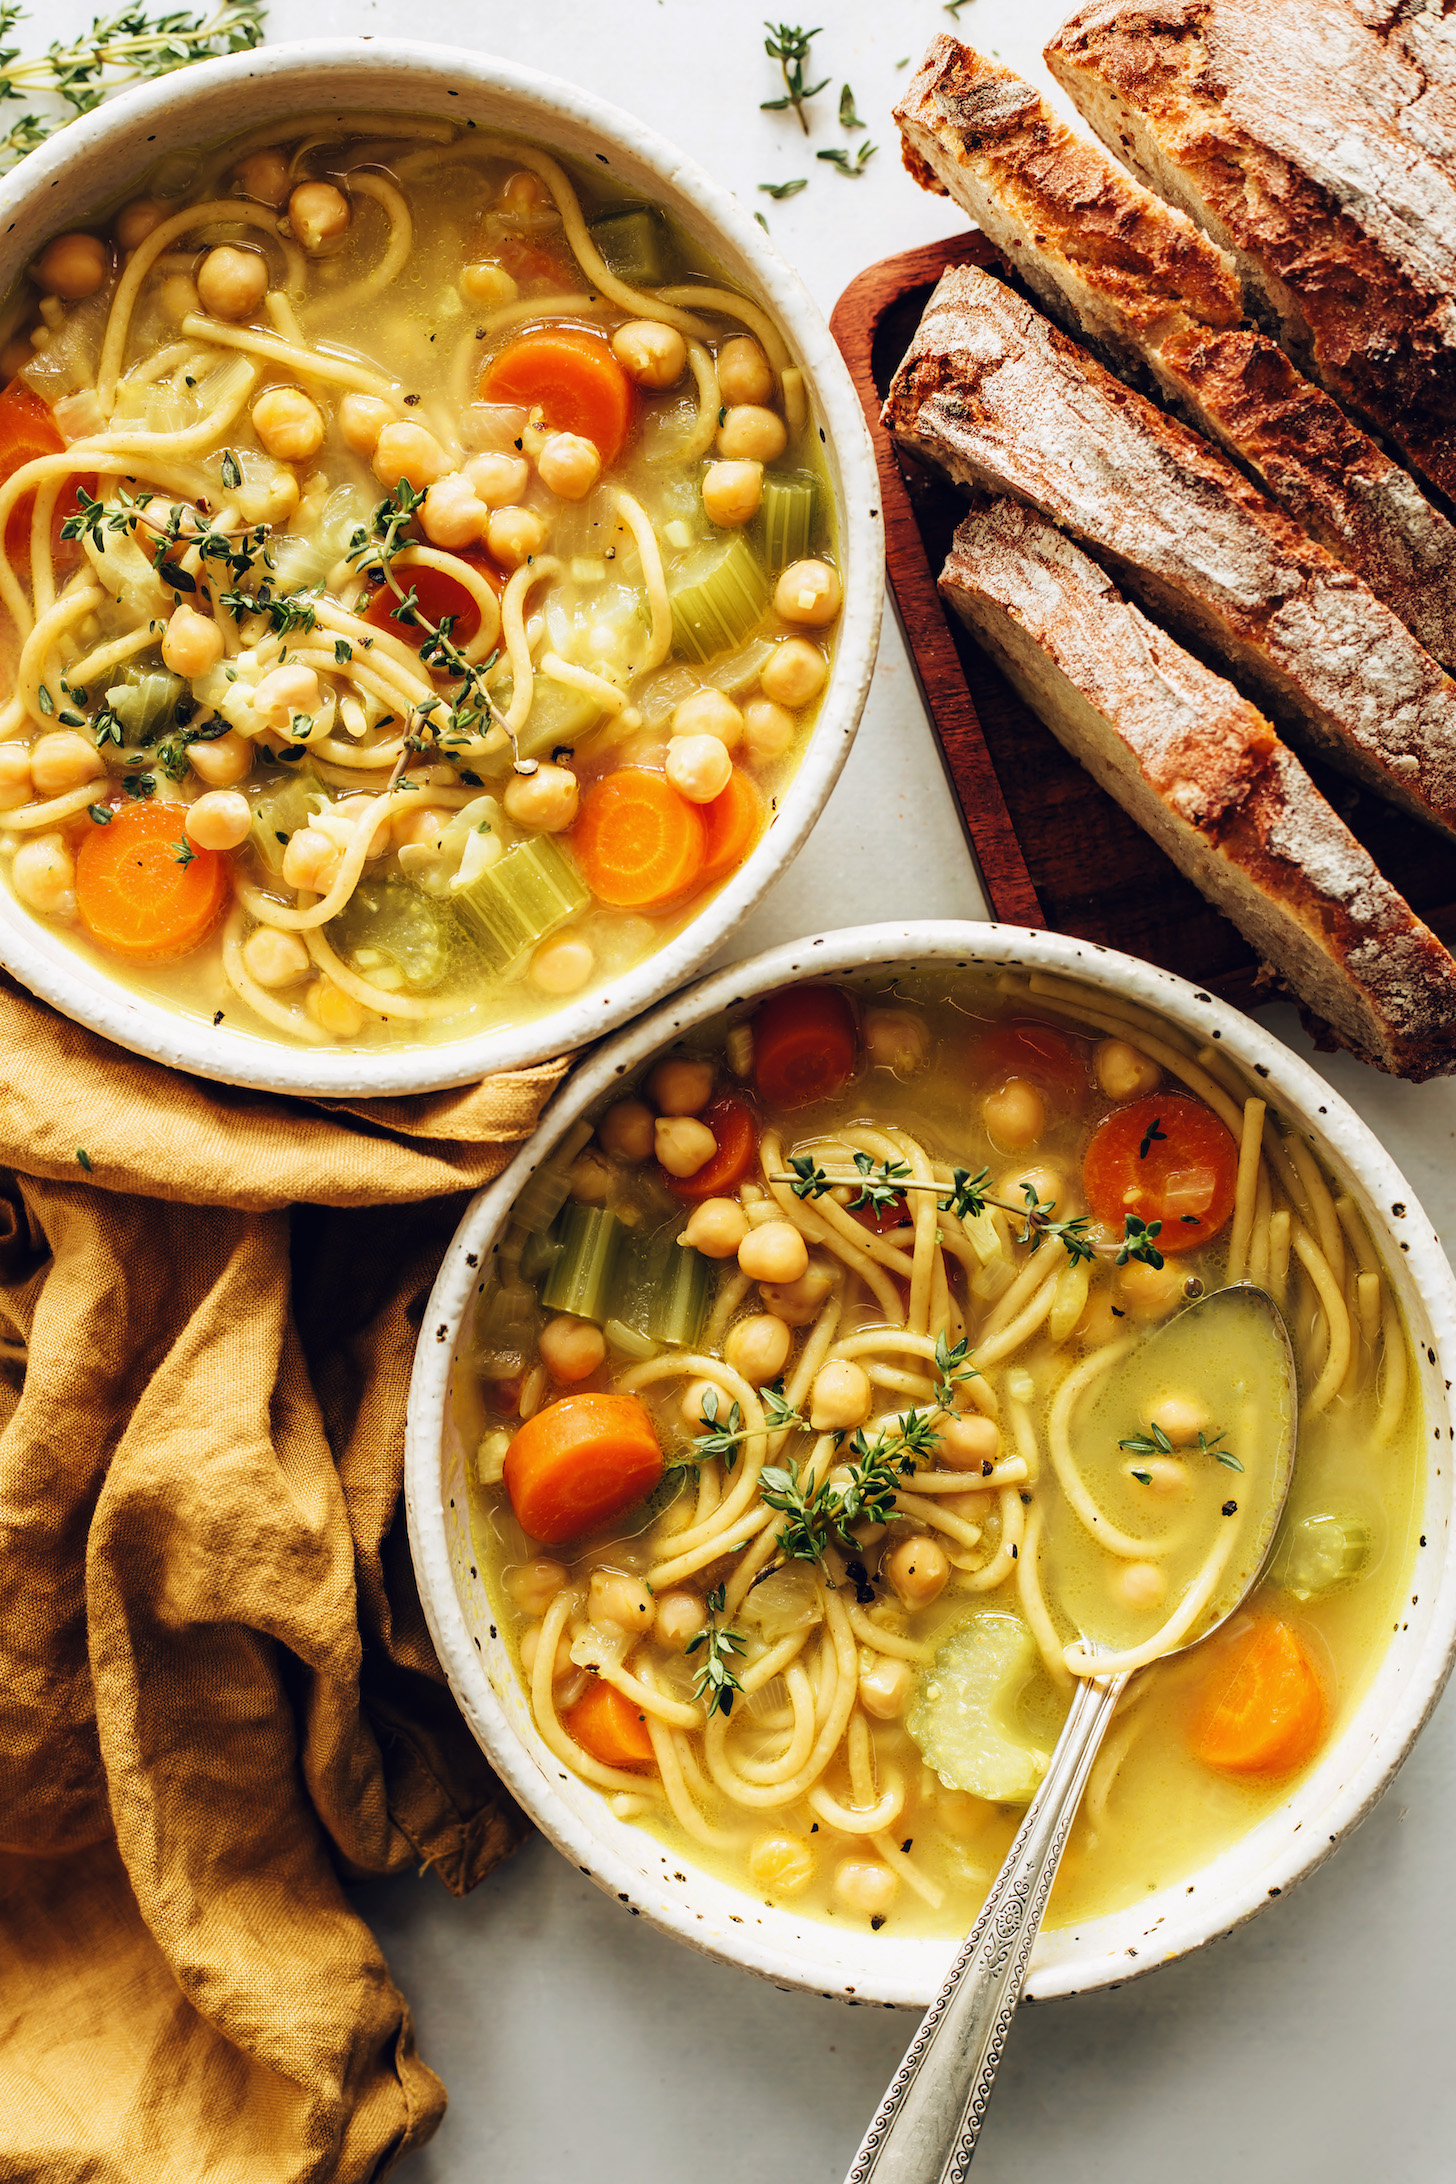 Sliced sourdough bread next to two bowls of chickpea noodle soup